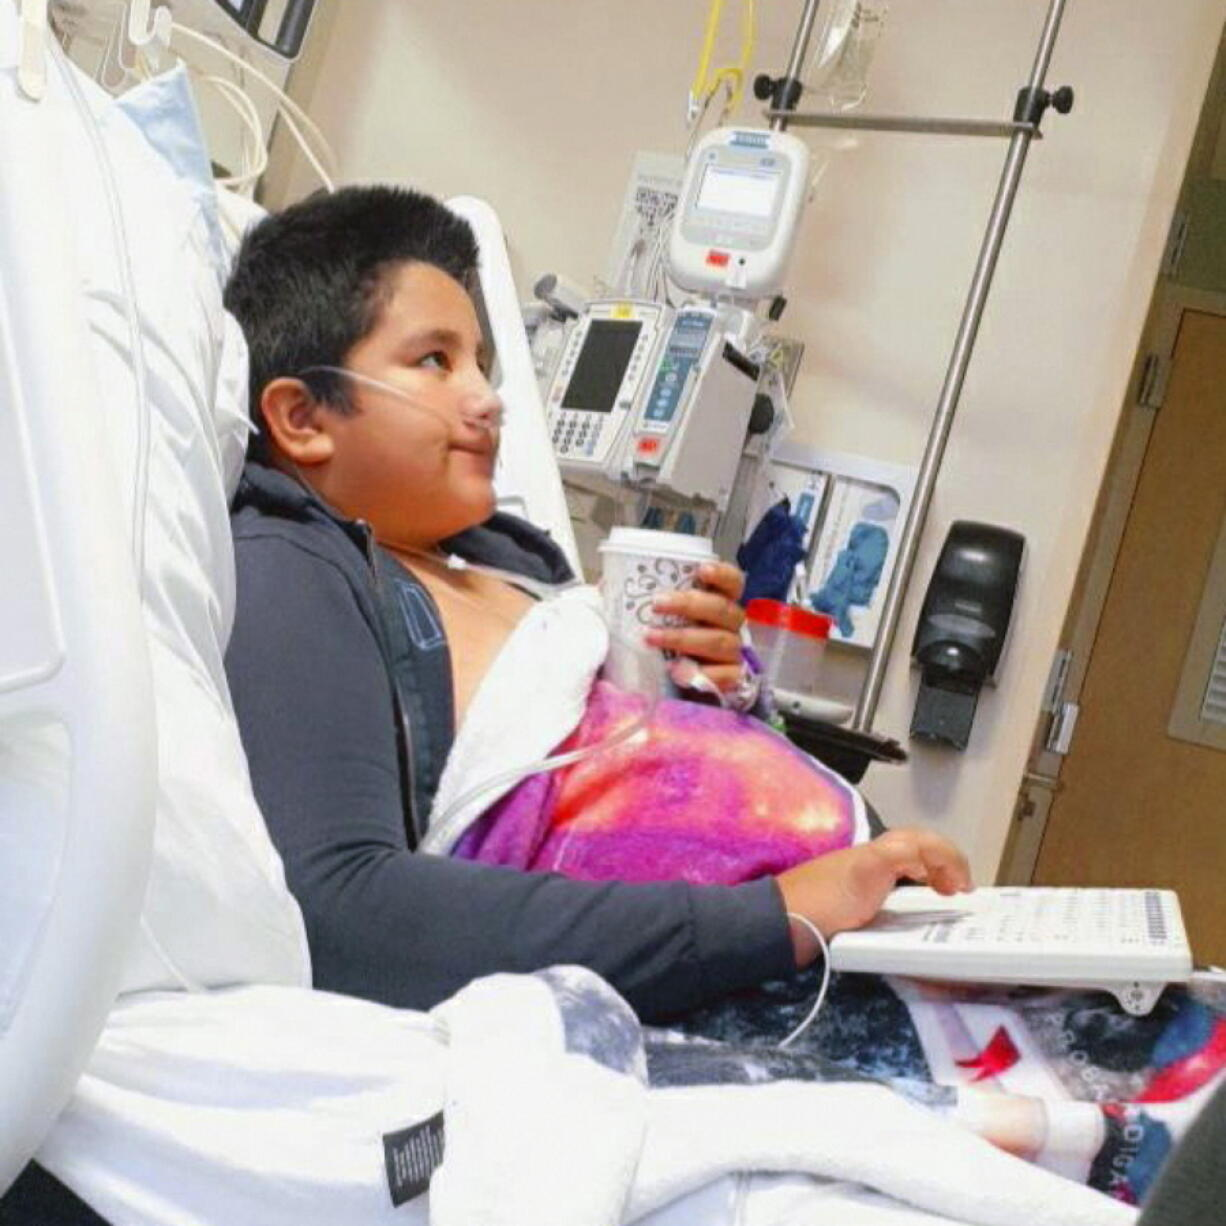 This 2021 photo provided by Yessica Gonzalez shows her son, Francisco Rosales, 9, in the intensive care unit at Children's Medical Center in Dallas, Texas. The day before he was supposed to start fourth grade, Francisco was admitted to the hospital due to severe COVID-19, struggling to breathe, with dangerously low oxygen levels and an uncertain outcome.